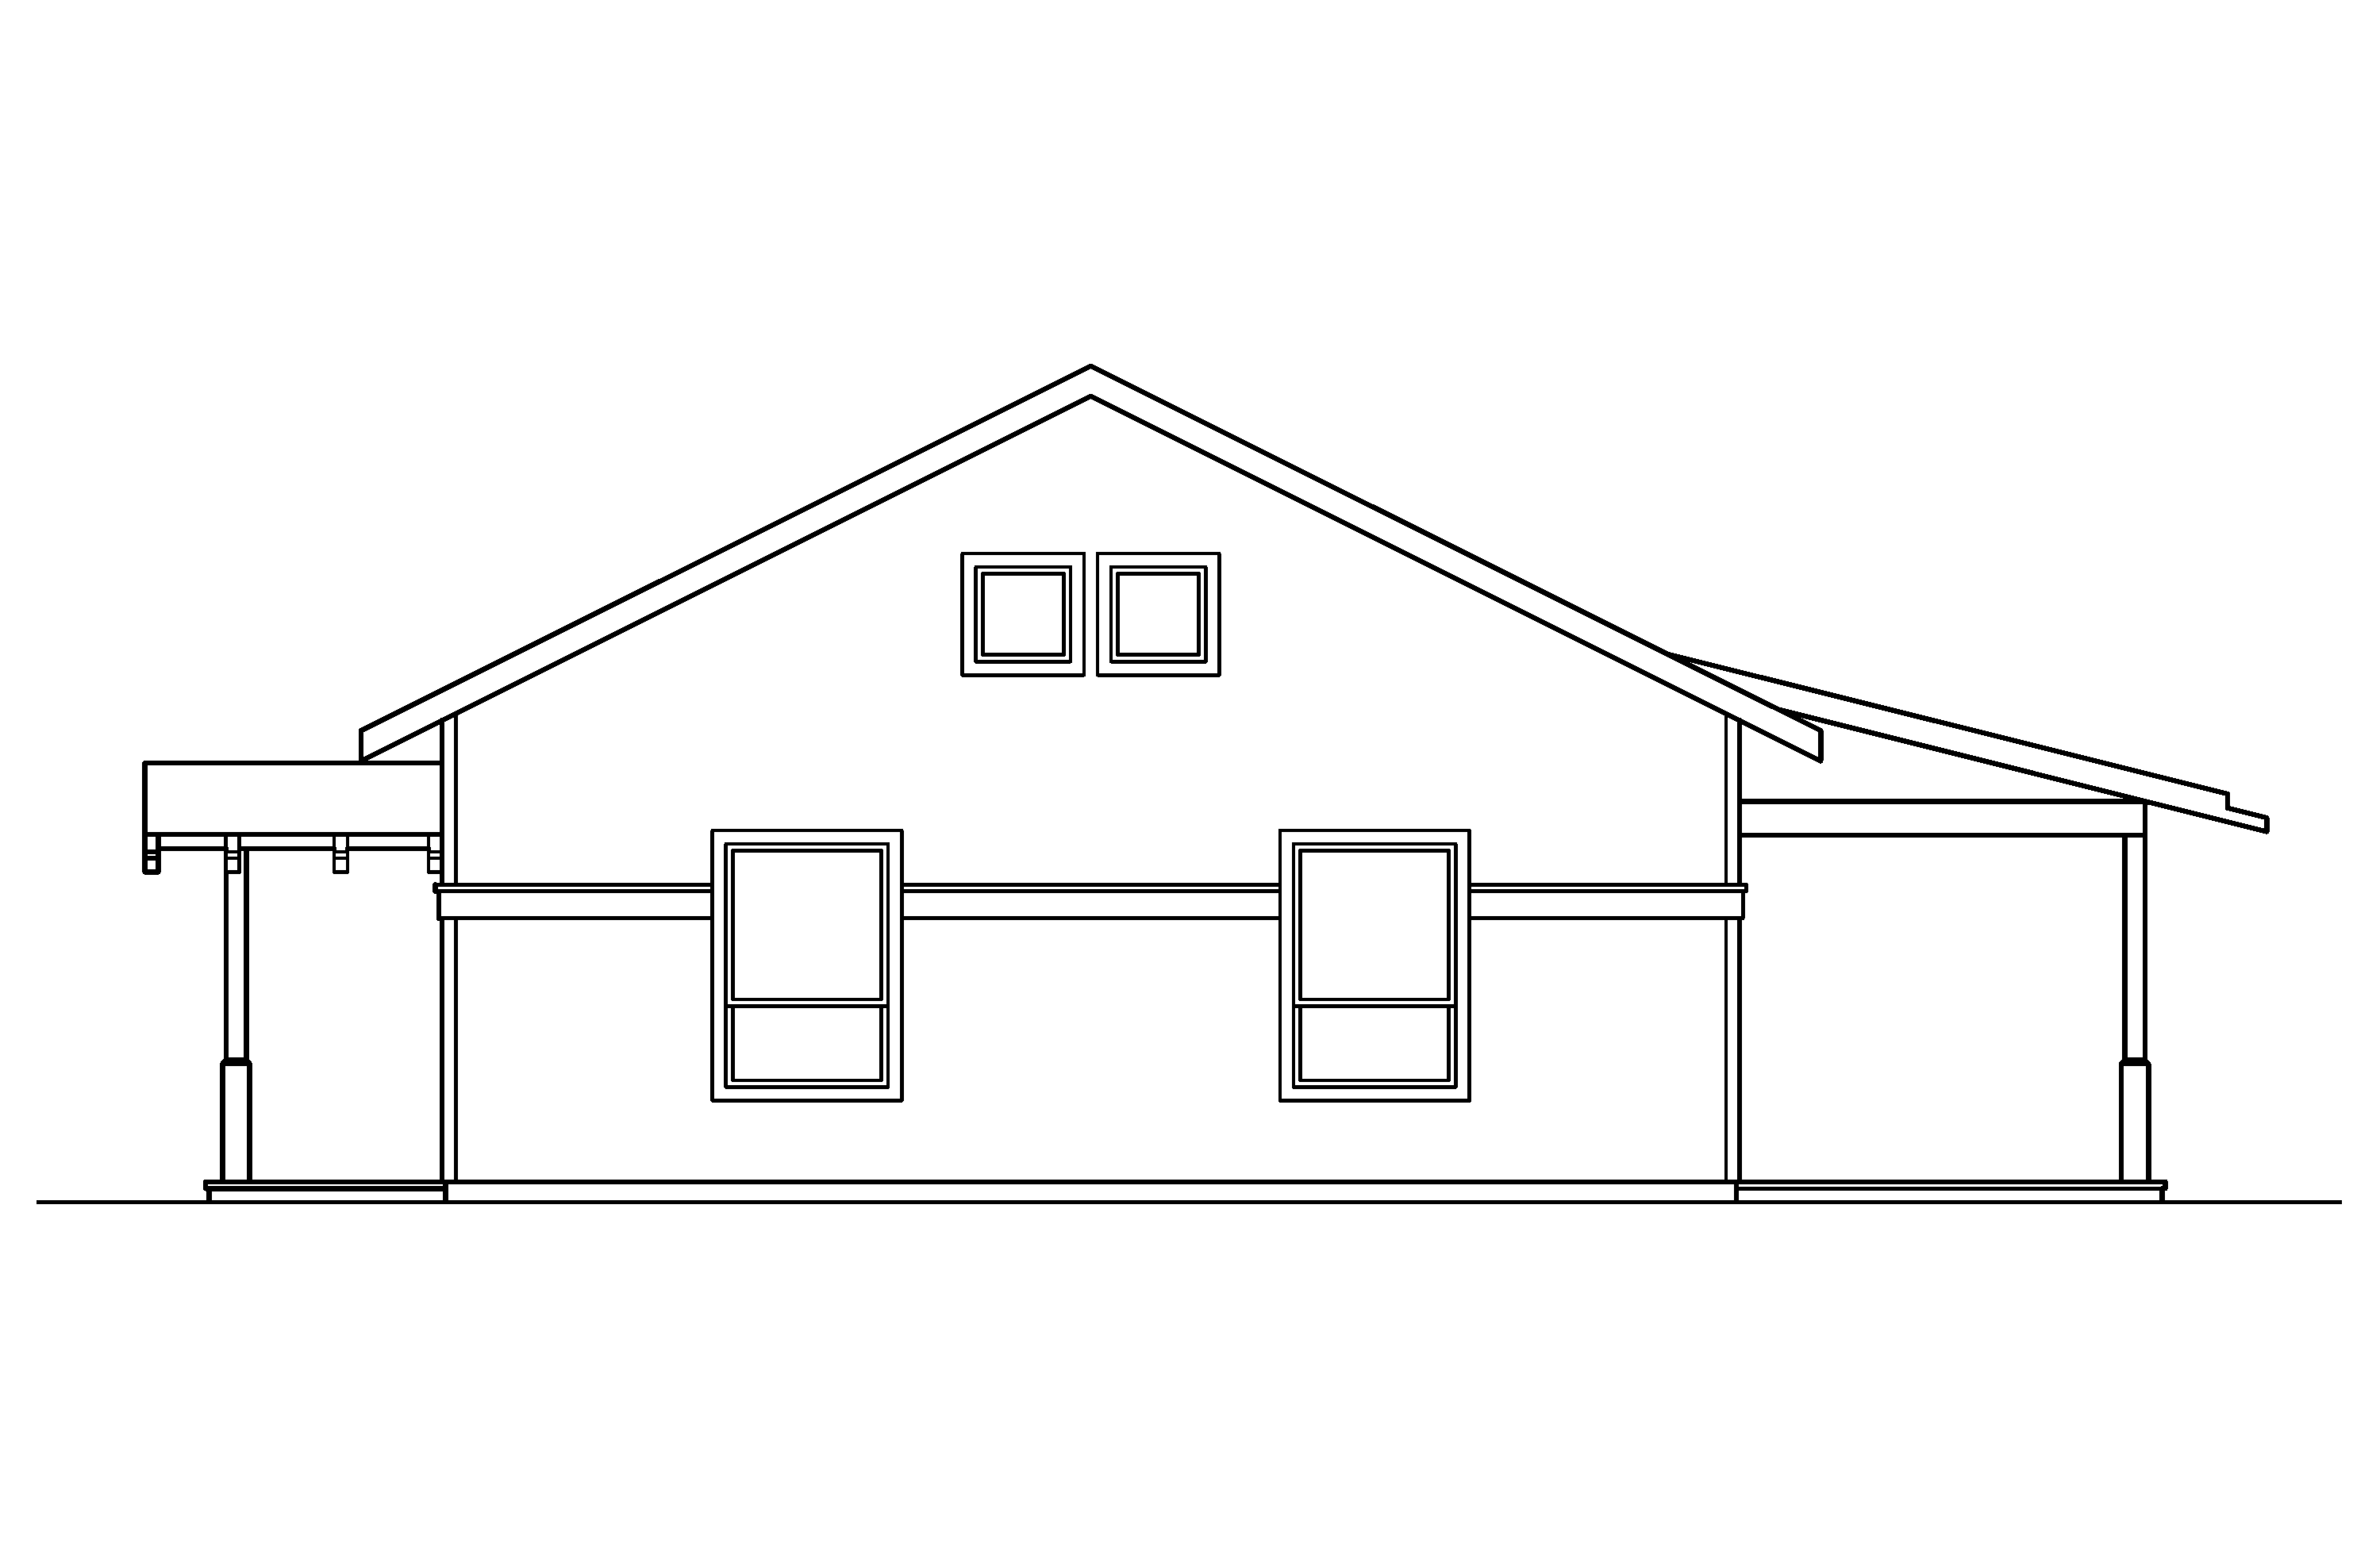 Bungalow House Plans - Kent 30-498 - ociated Designs on house elevation blueprint, house floor plan and elevation, house side elevation plan,